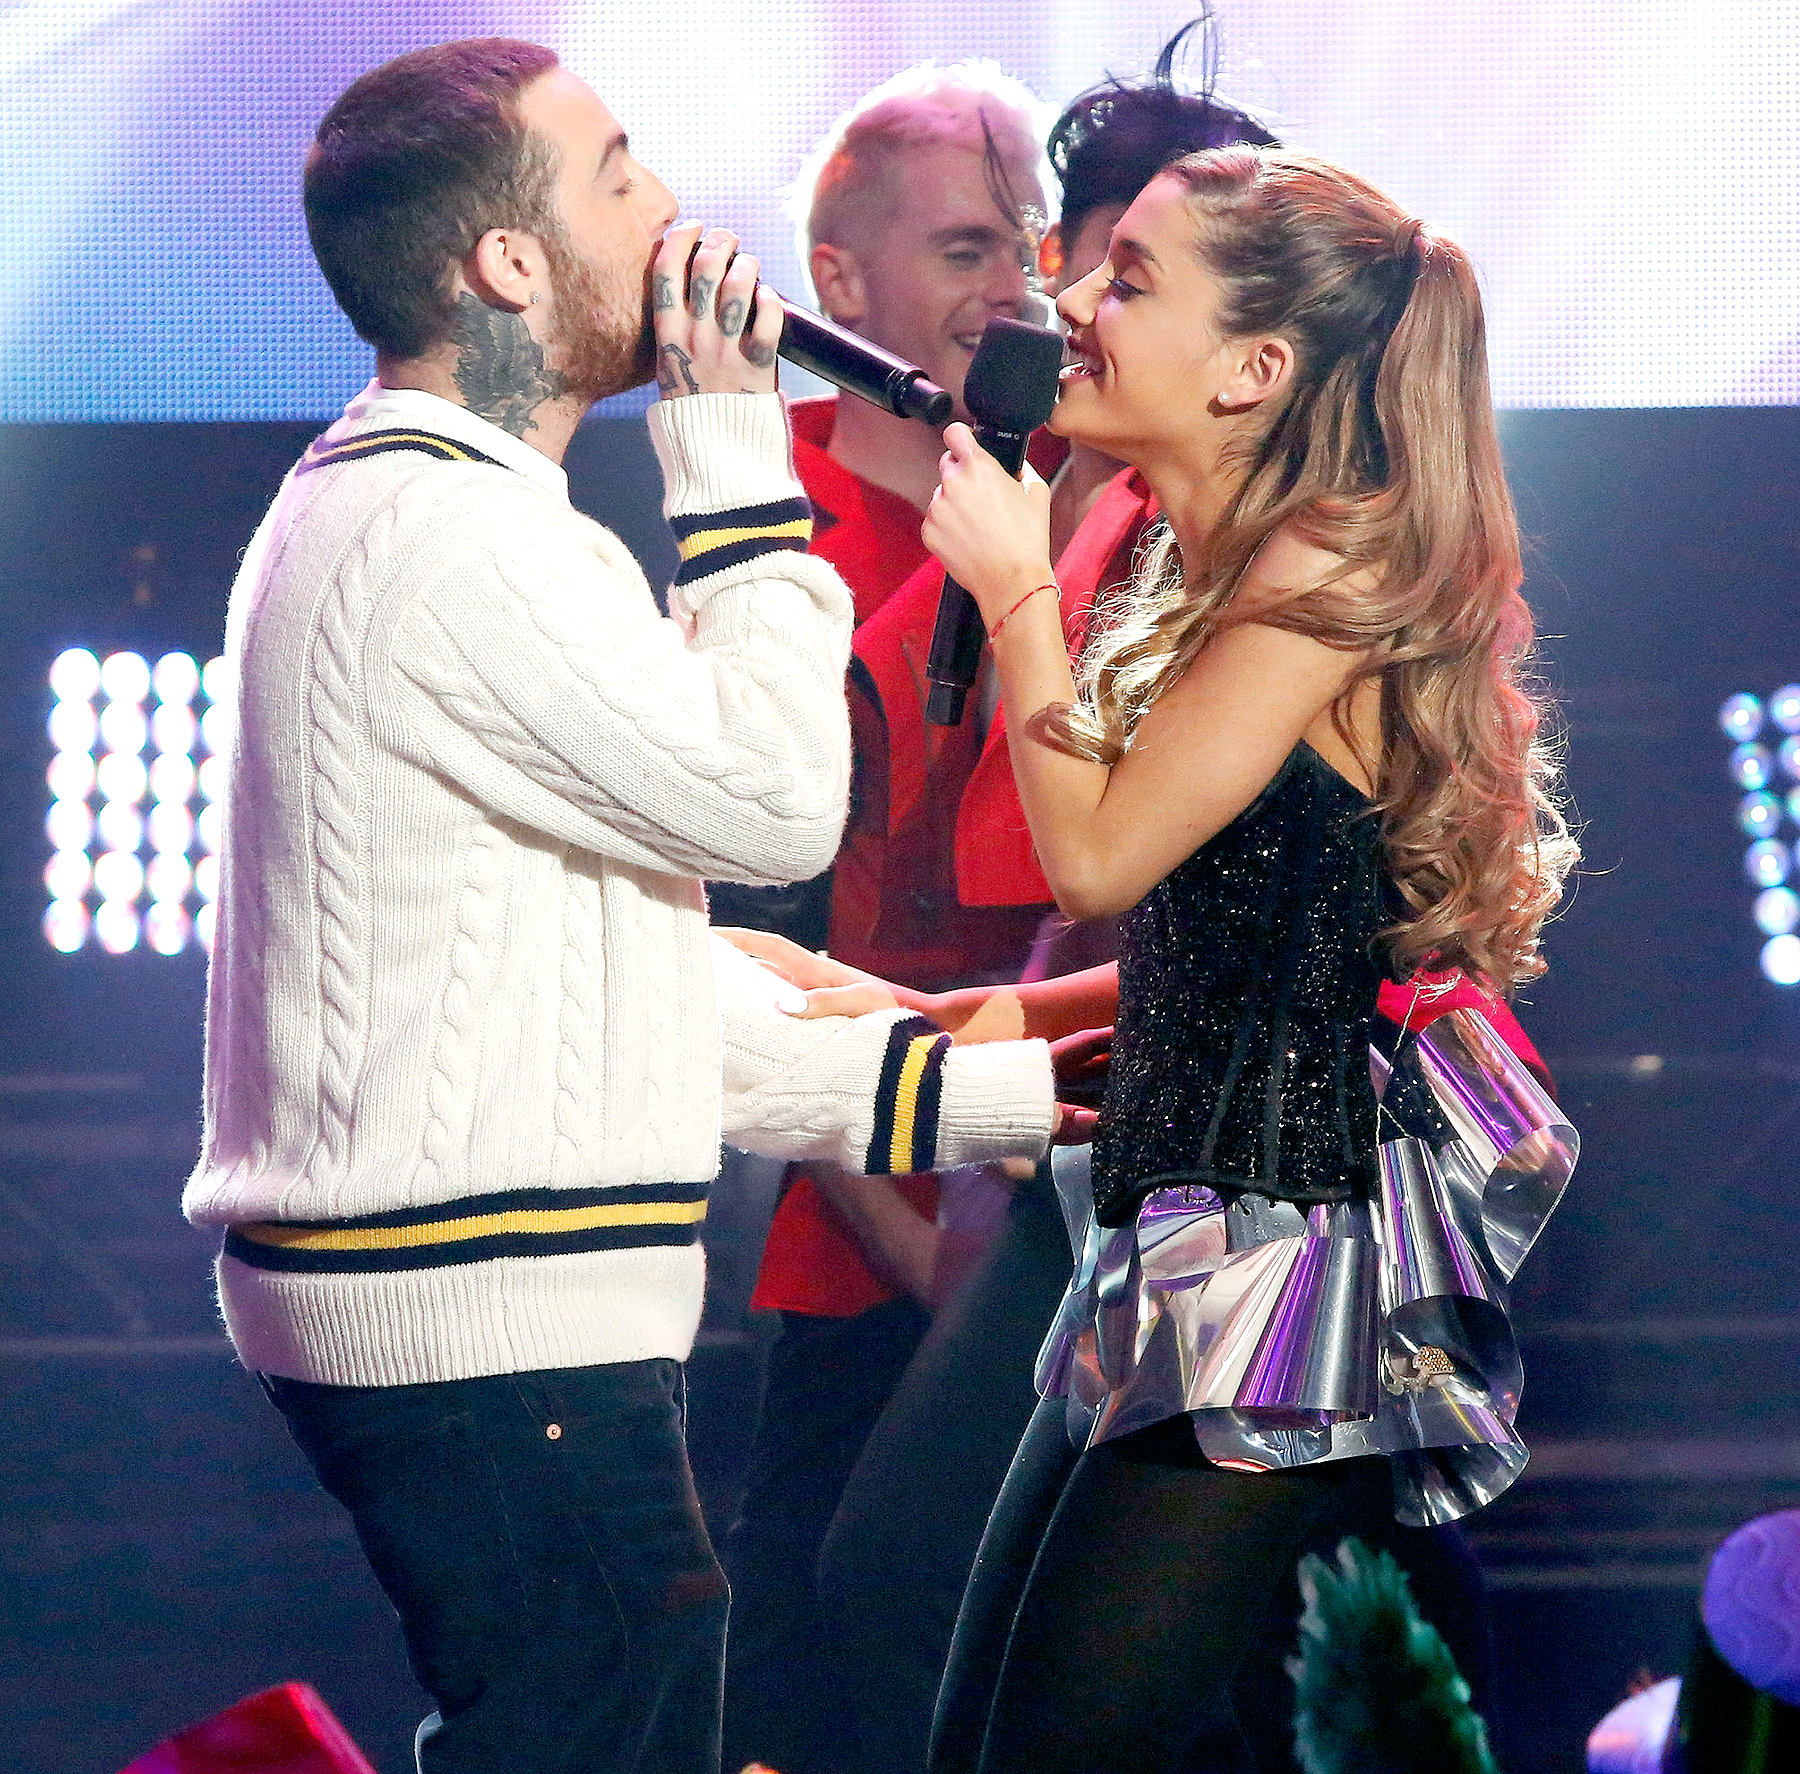 Mac Miller and Ariana Grande perform at Dick Clark's New Year's Rockin' Eve With Ryan Seacrest 2014.